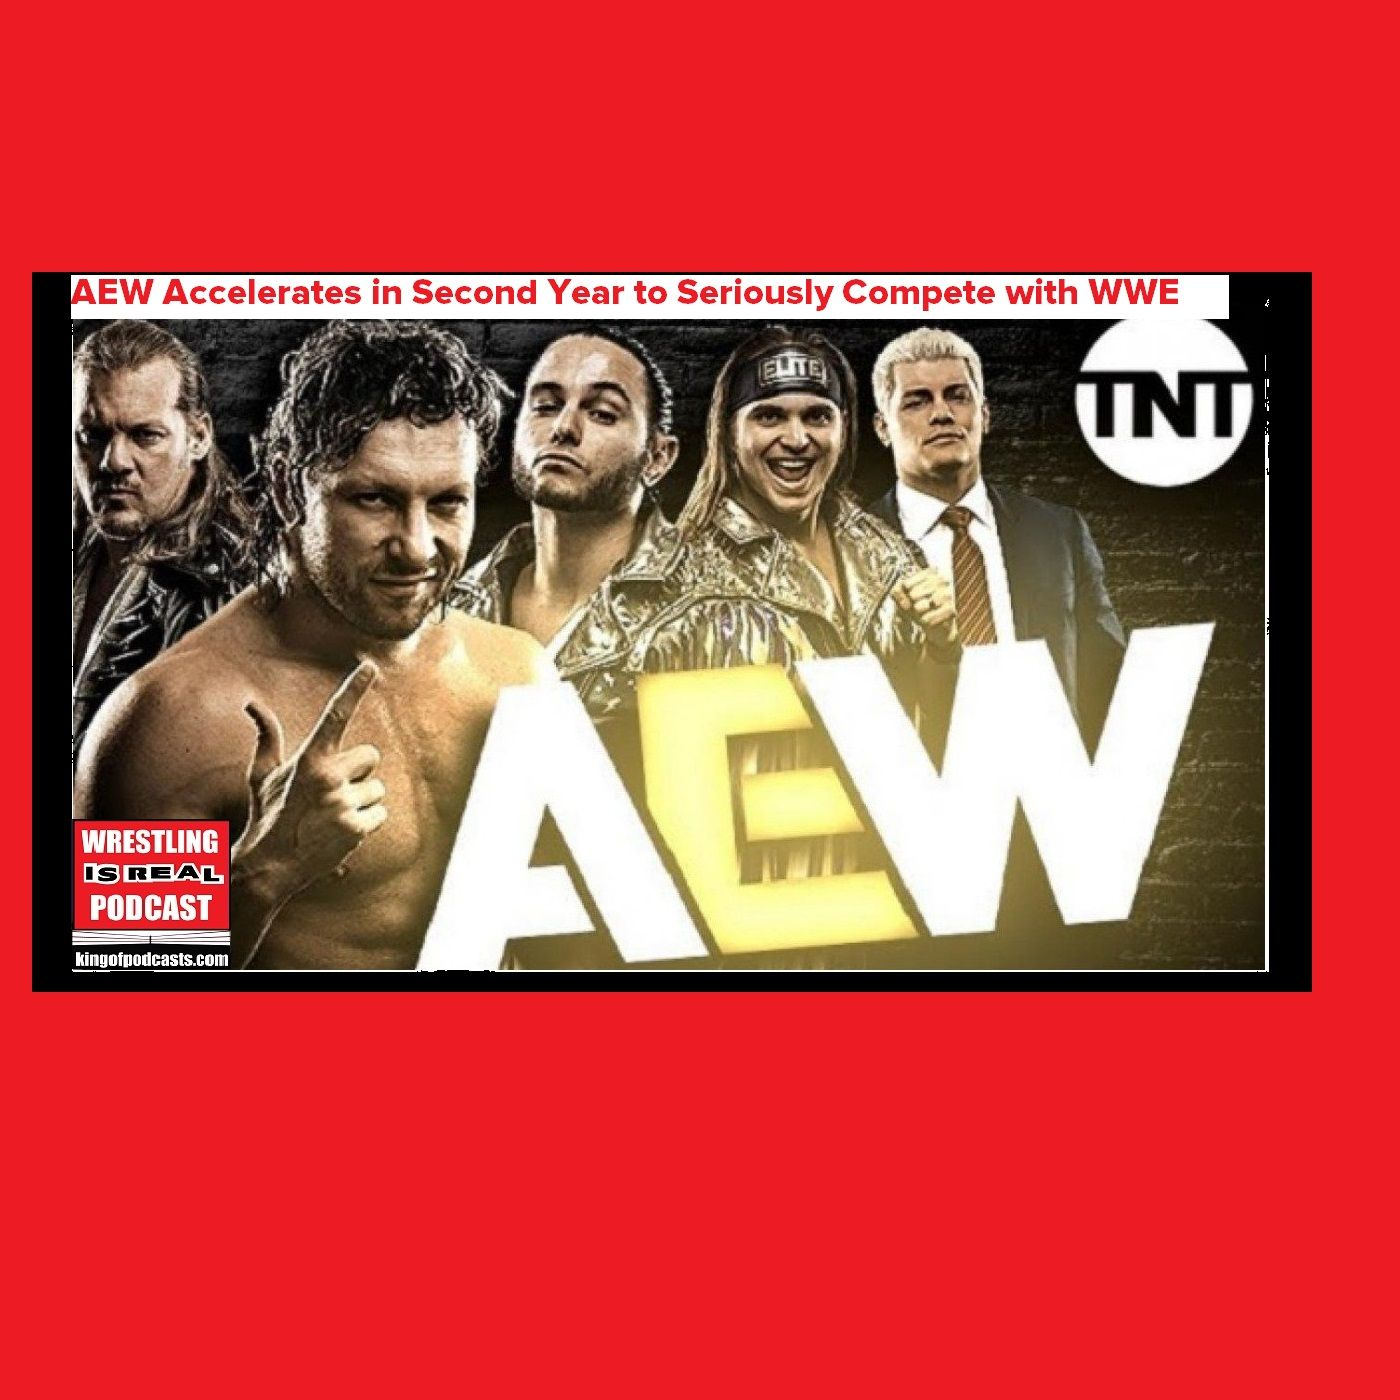 AEW Accelerates in Second Year to Seriously Compete with WWE KOP011620-510